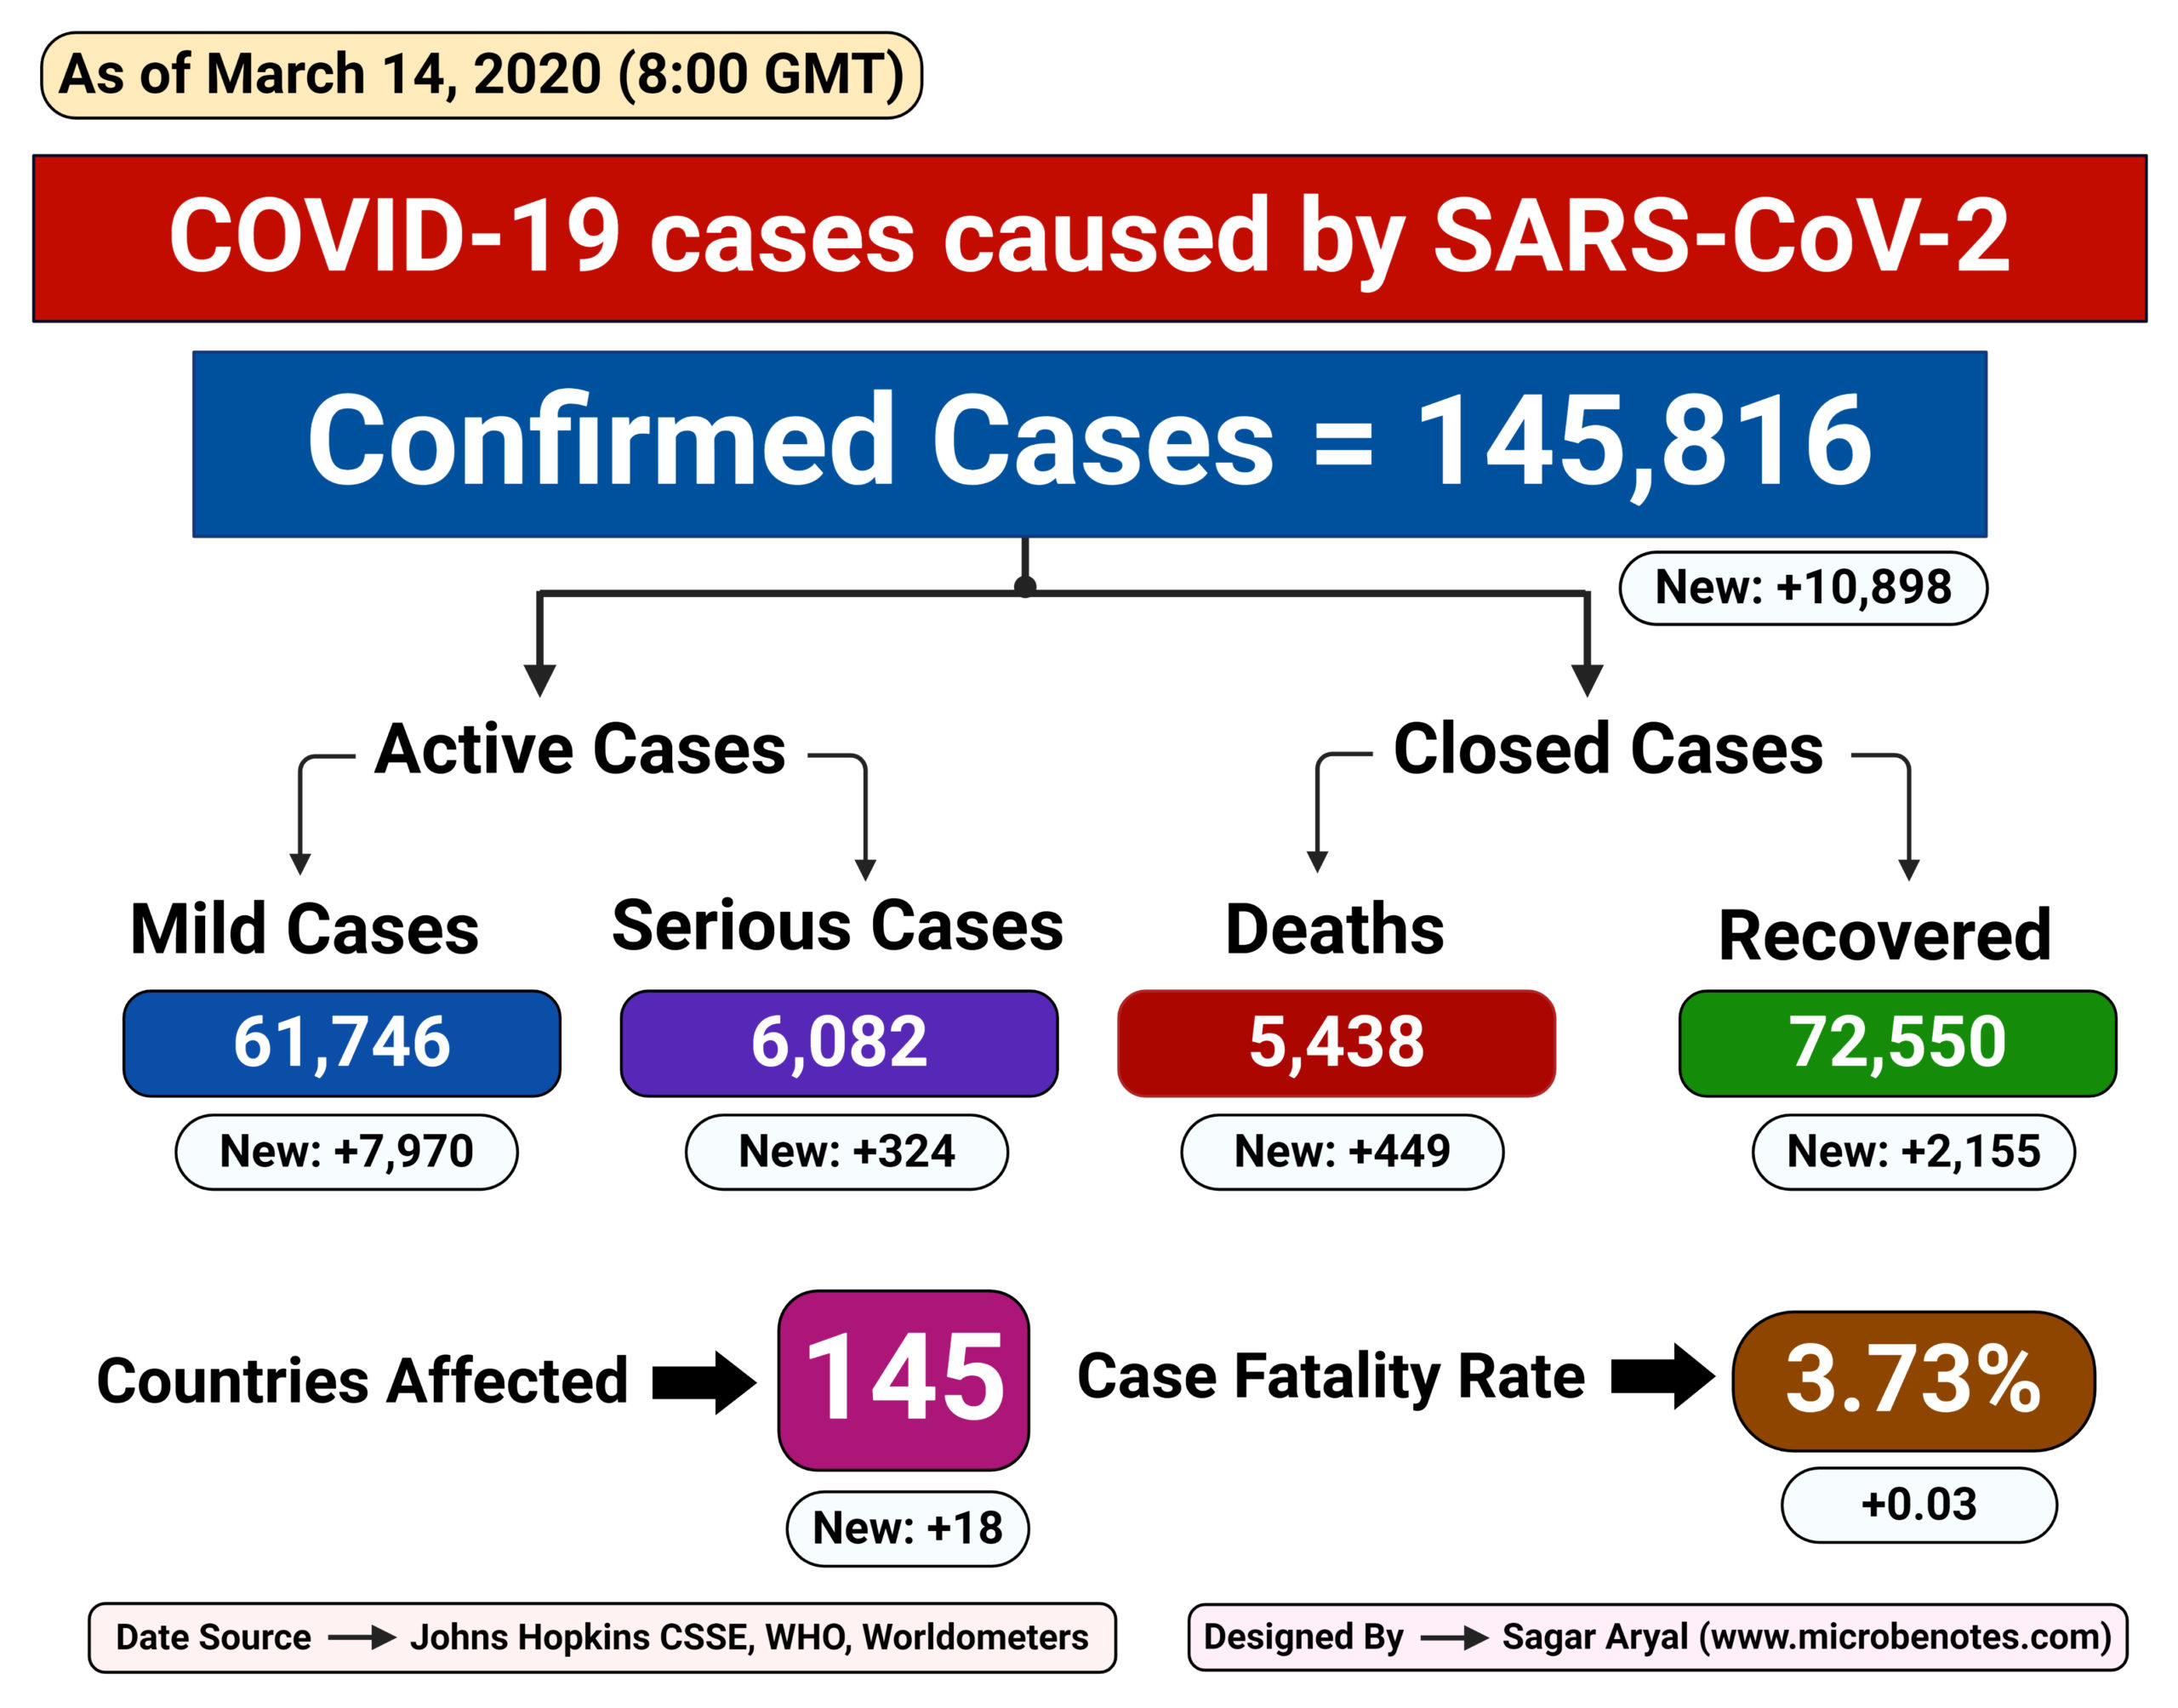 Epidemiology of COVID-19 caused by SARS-CoV-2 as of March 14, 2020